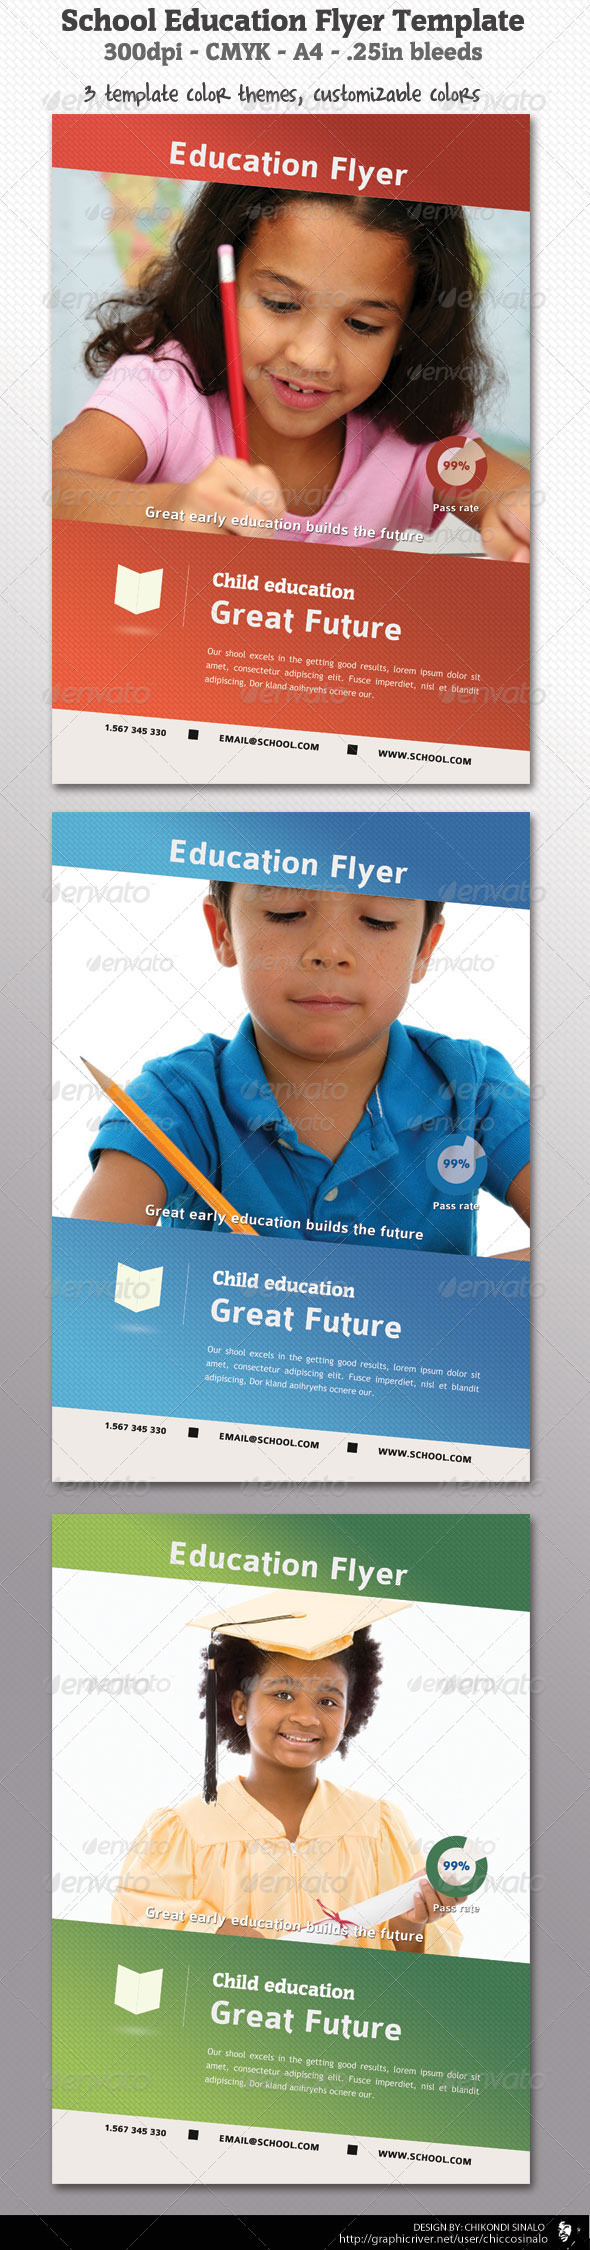 School Education Flyer Template - Flyers Print Templates